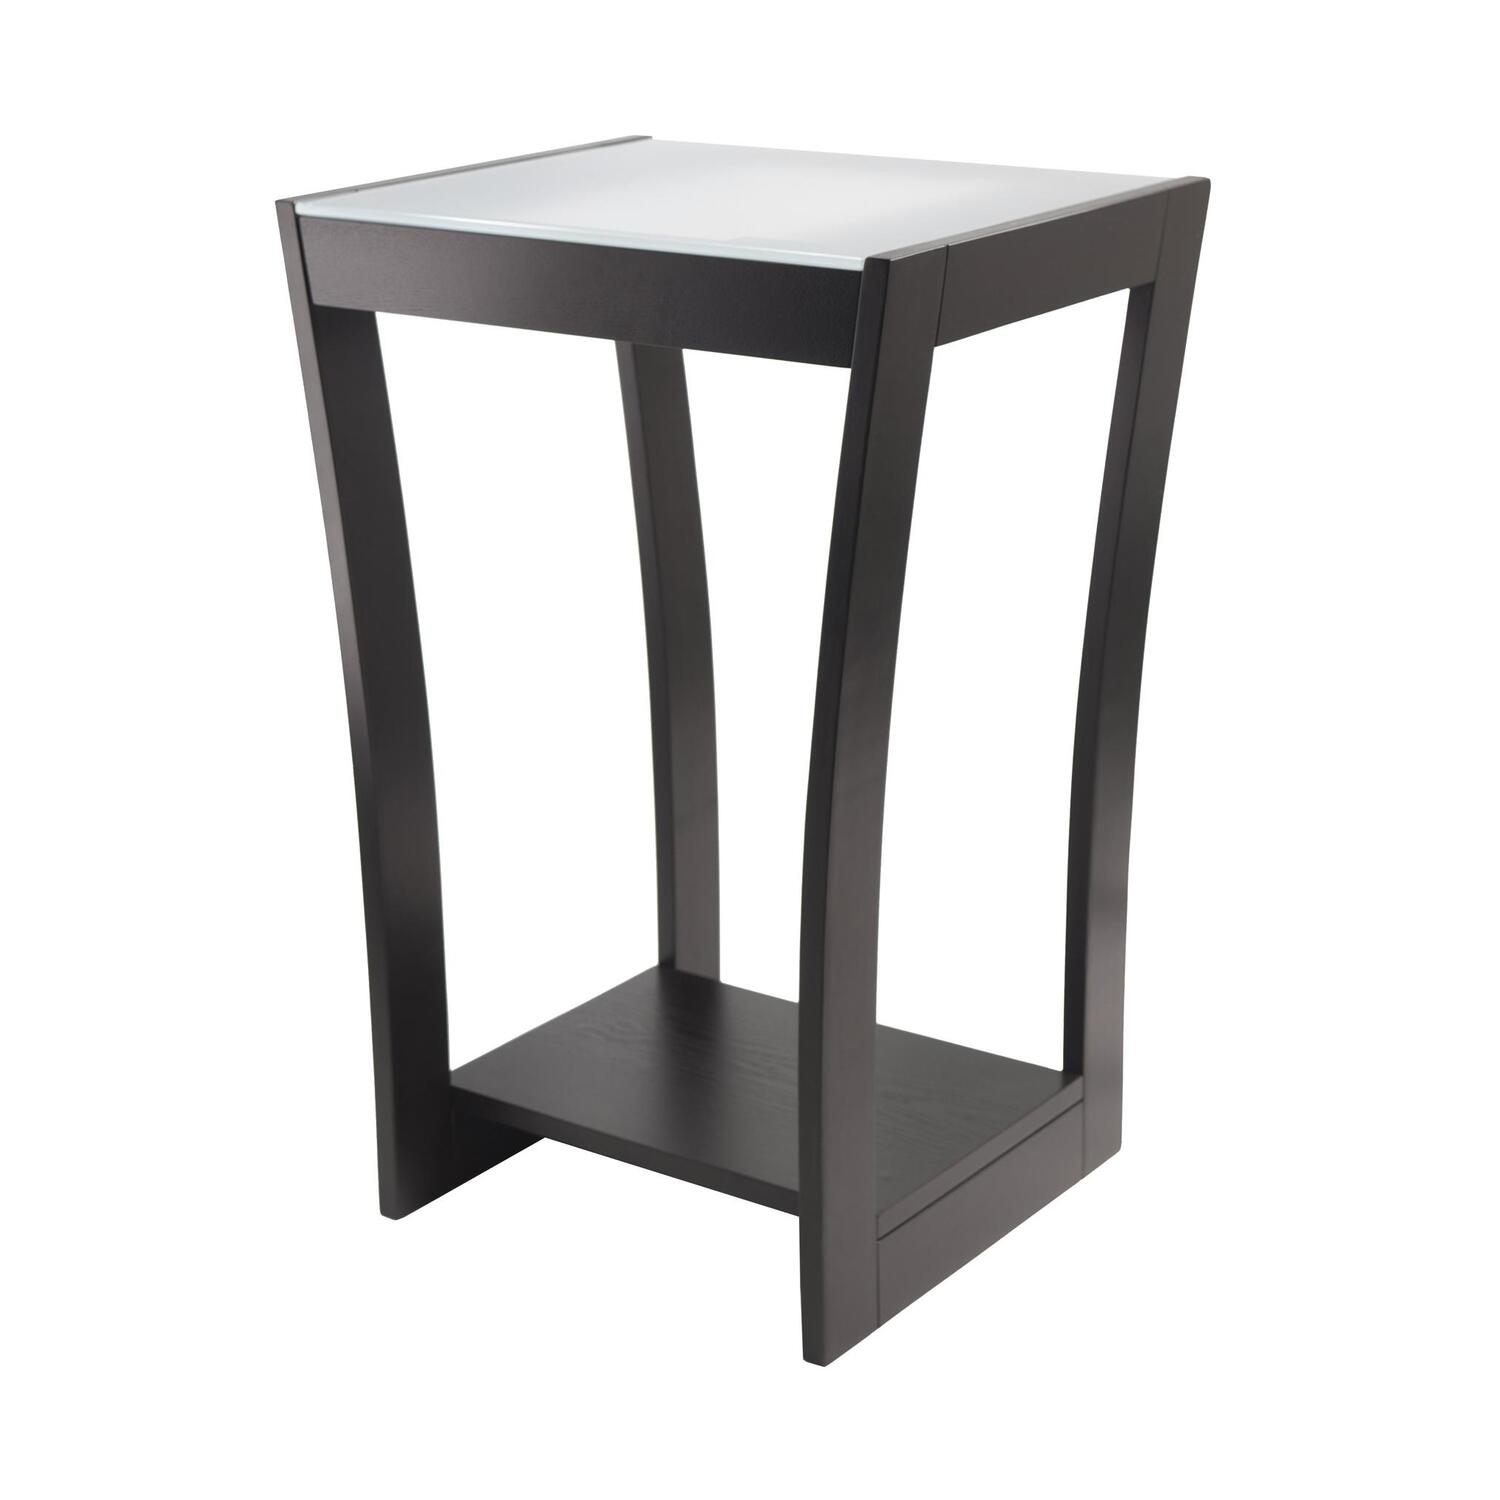 Radius Accent Side Table With Frosted Glass And Curved Legs